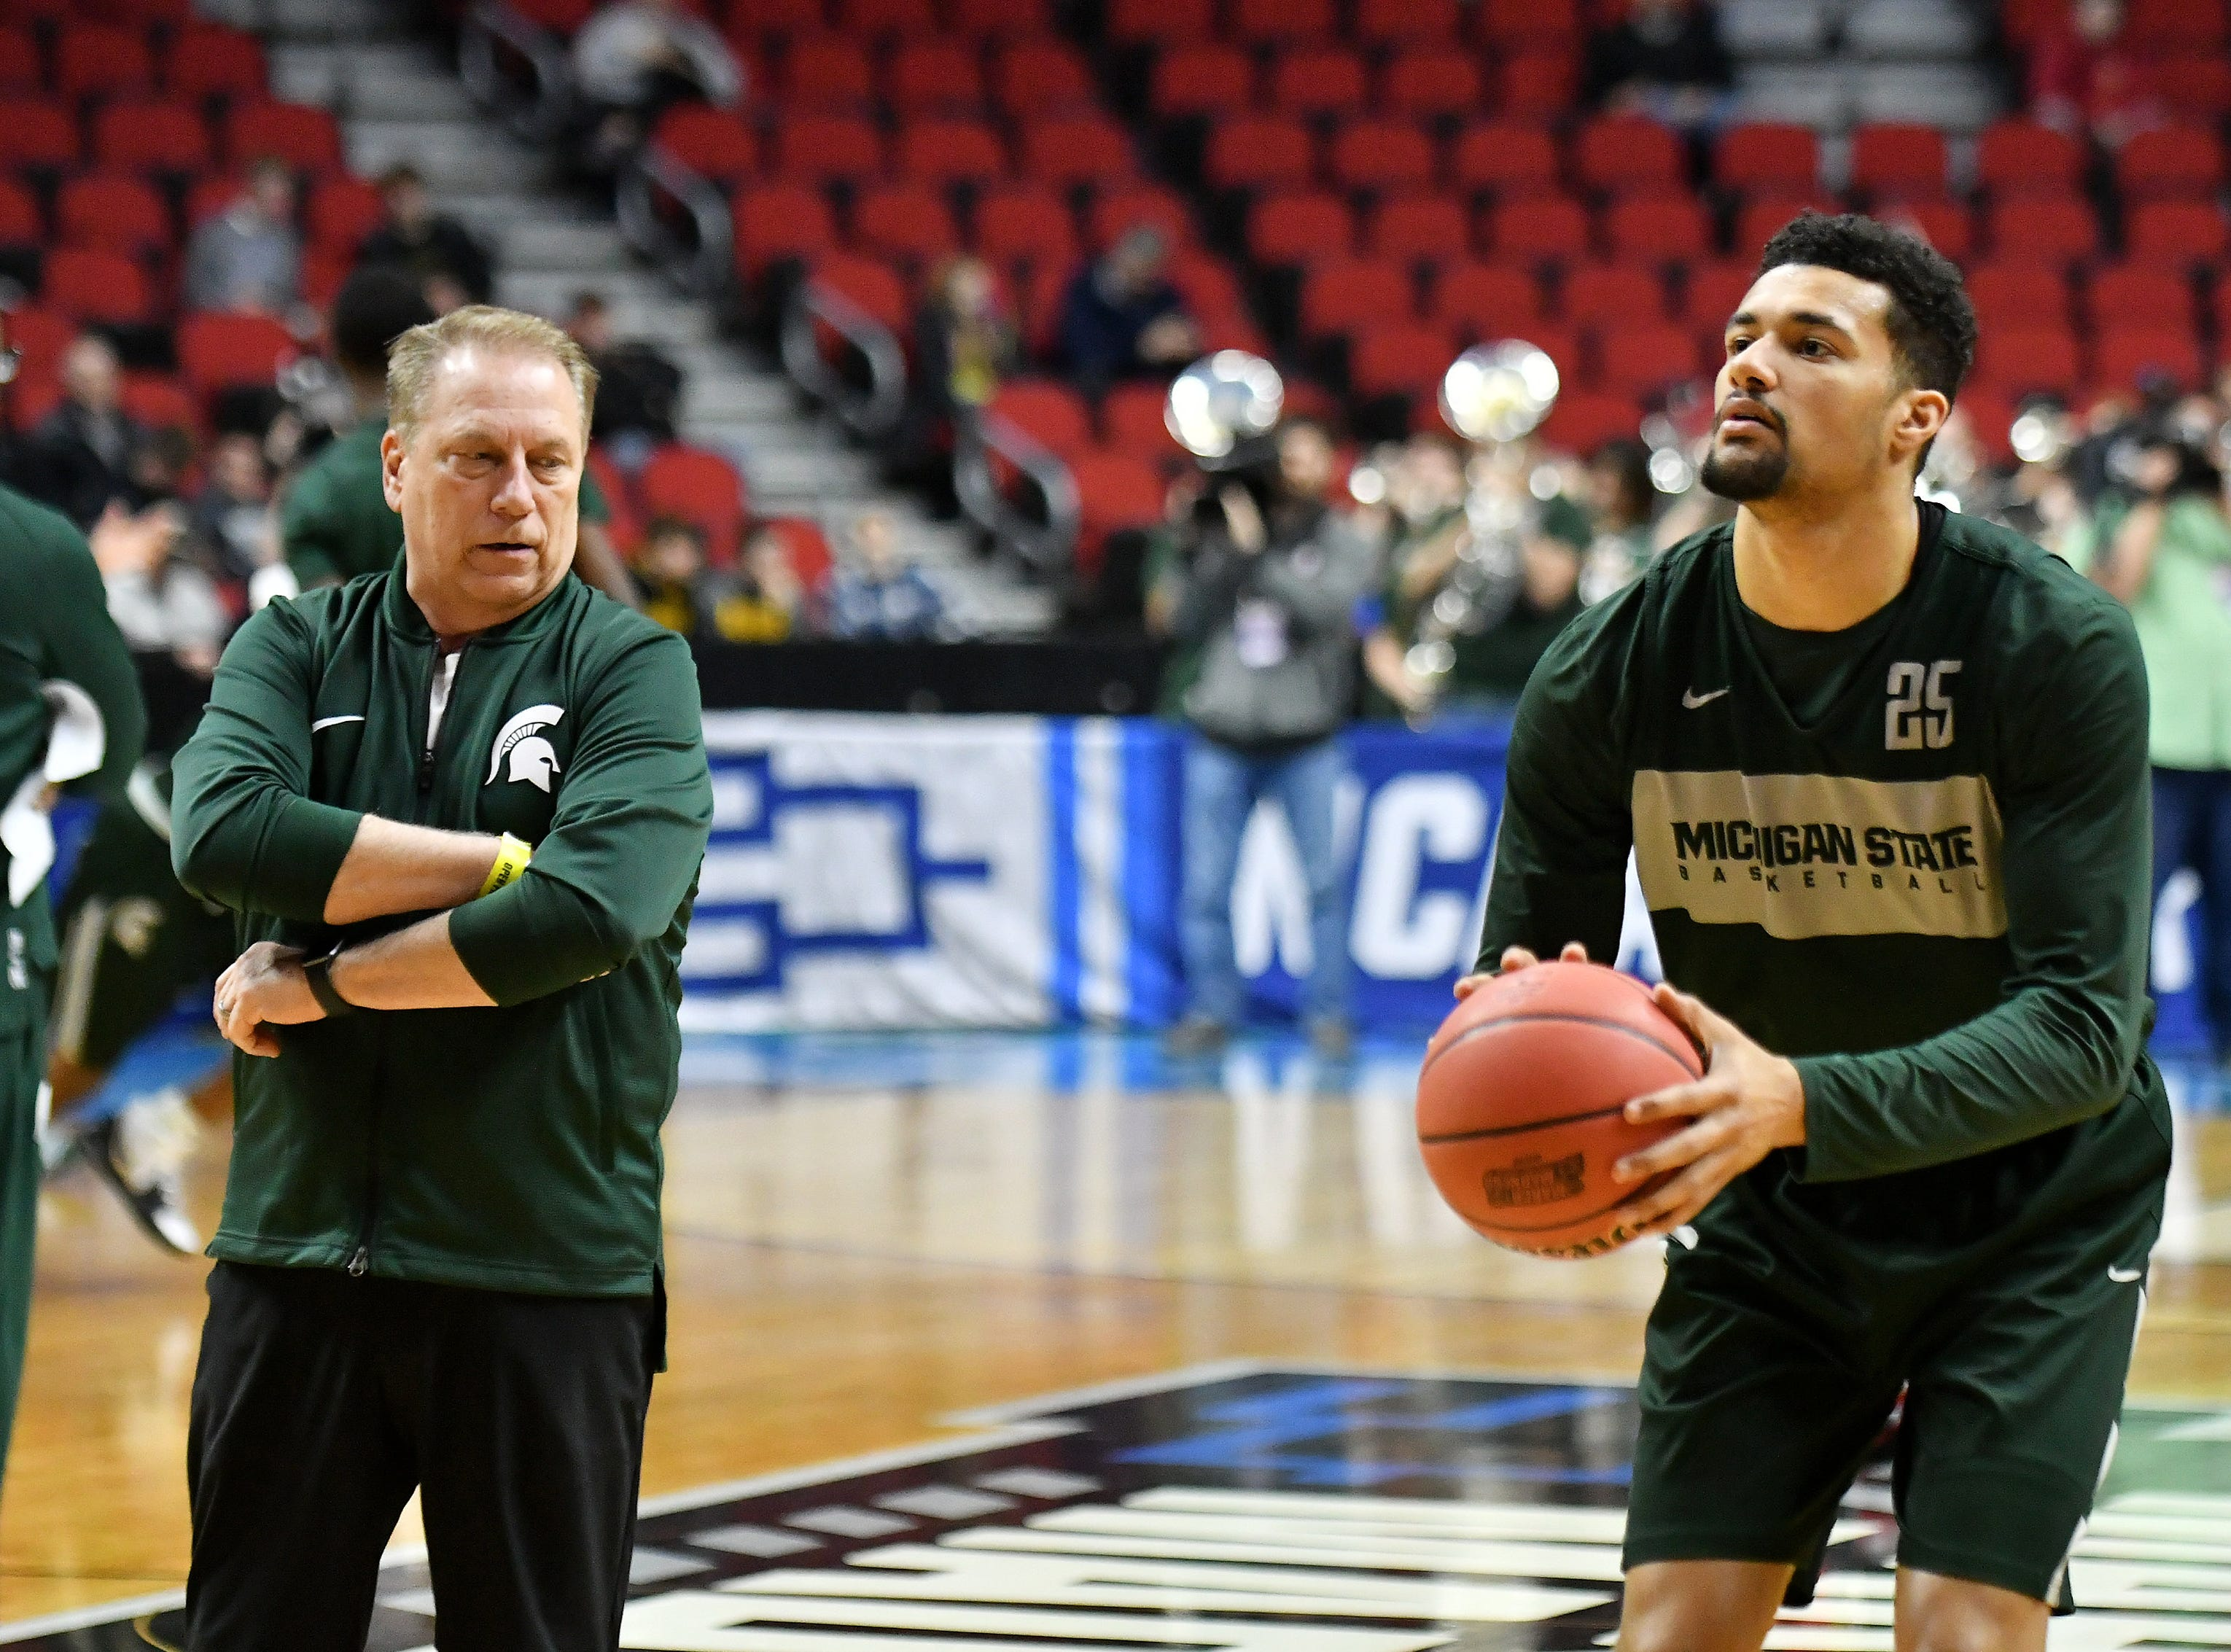 Michigan State head coach Tom Izzo watches forward Kenny Goins take a shot.